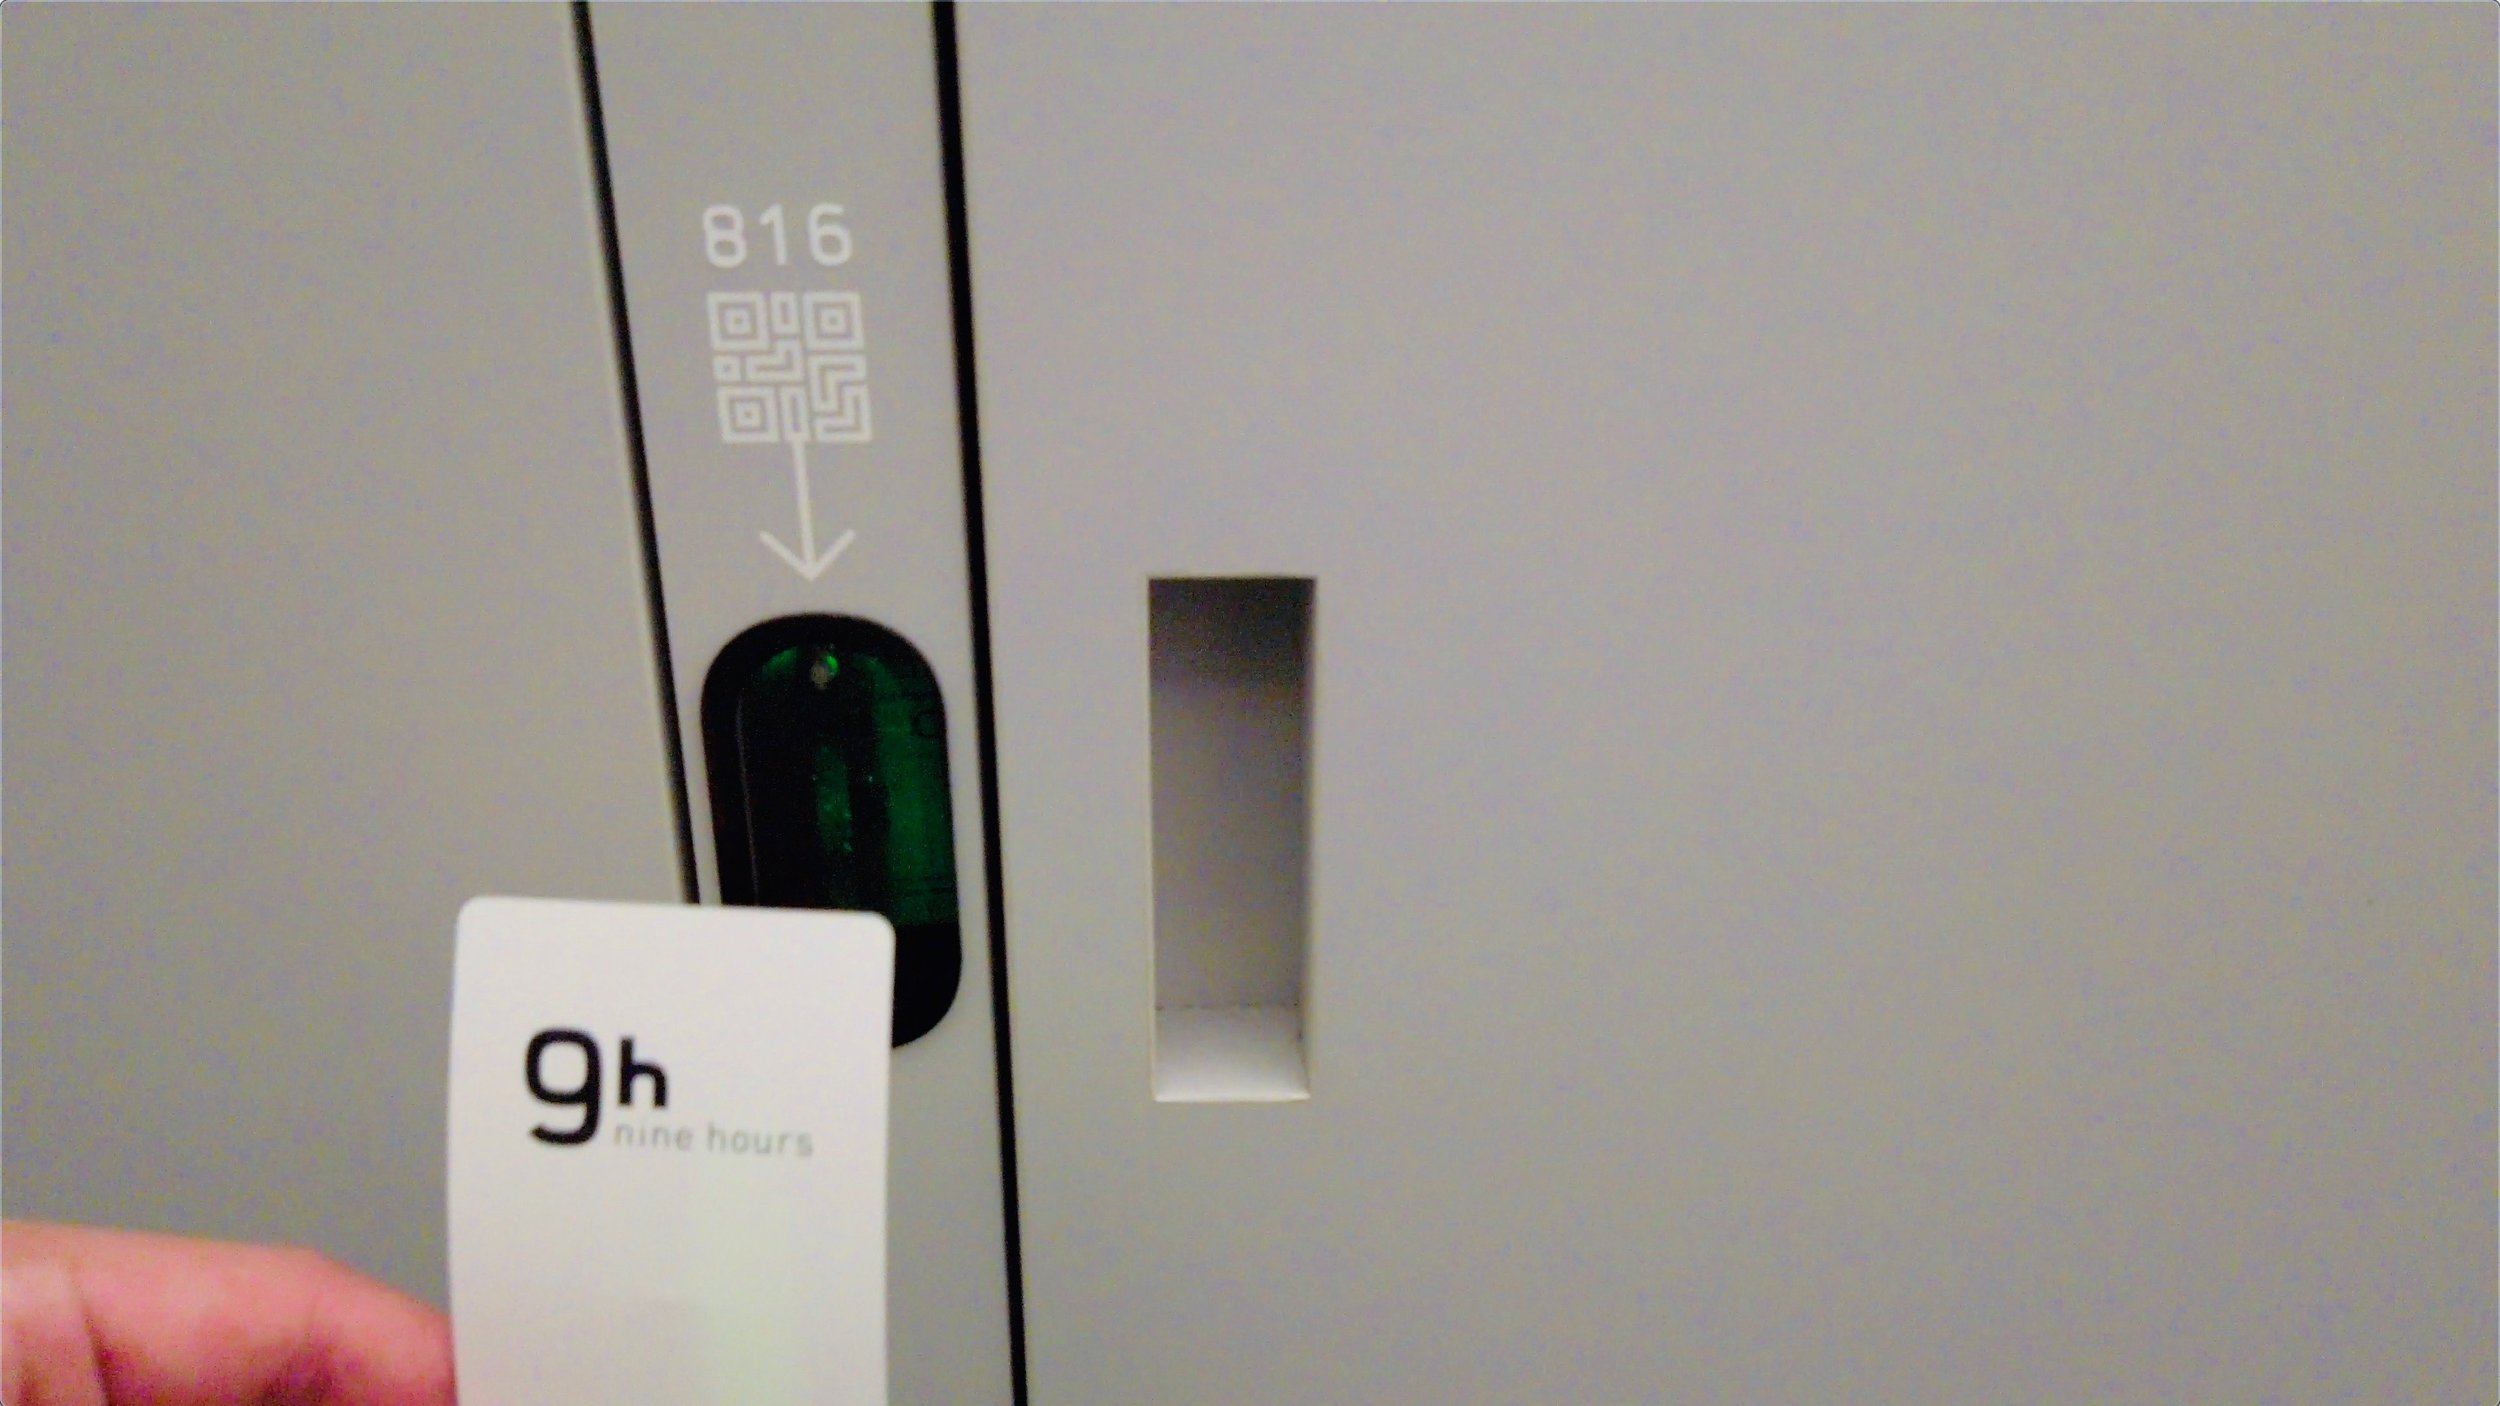 Your locker is unlocked with a QR code keycard at Nine Hours.